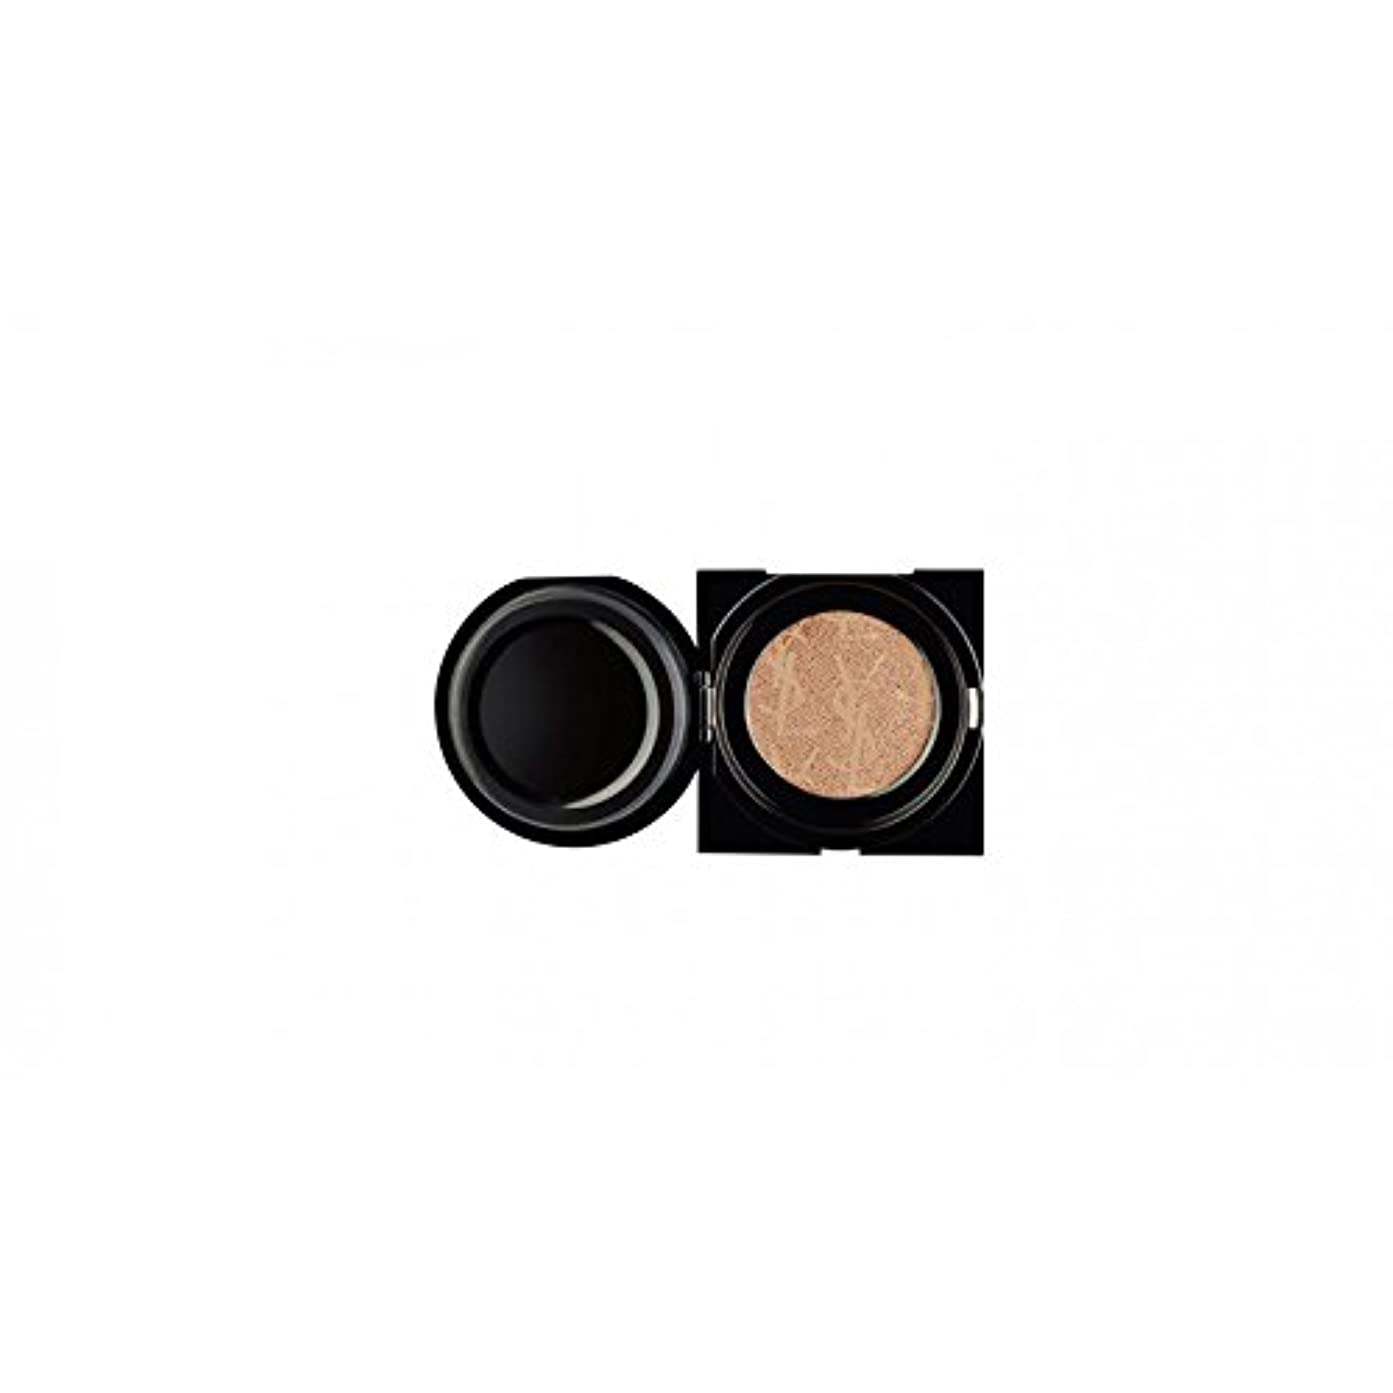 好み法律マトリックスイヴサンローラン Touche Eclat Le Cushion Liquid Foundation Compact Refill - #BR40 Cool Sand 15g/0.53oz